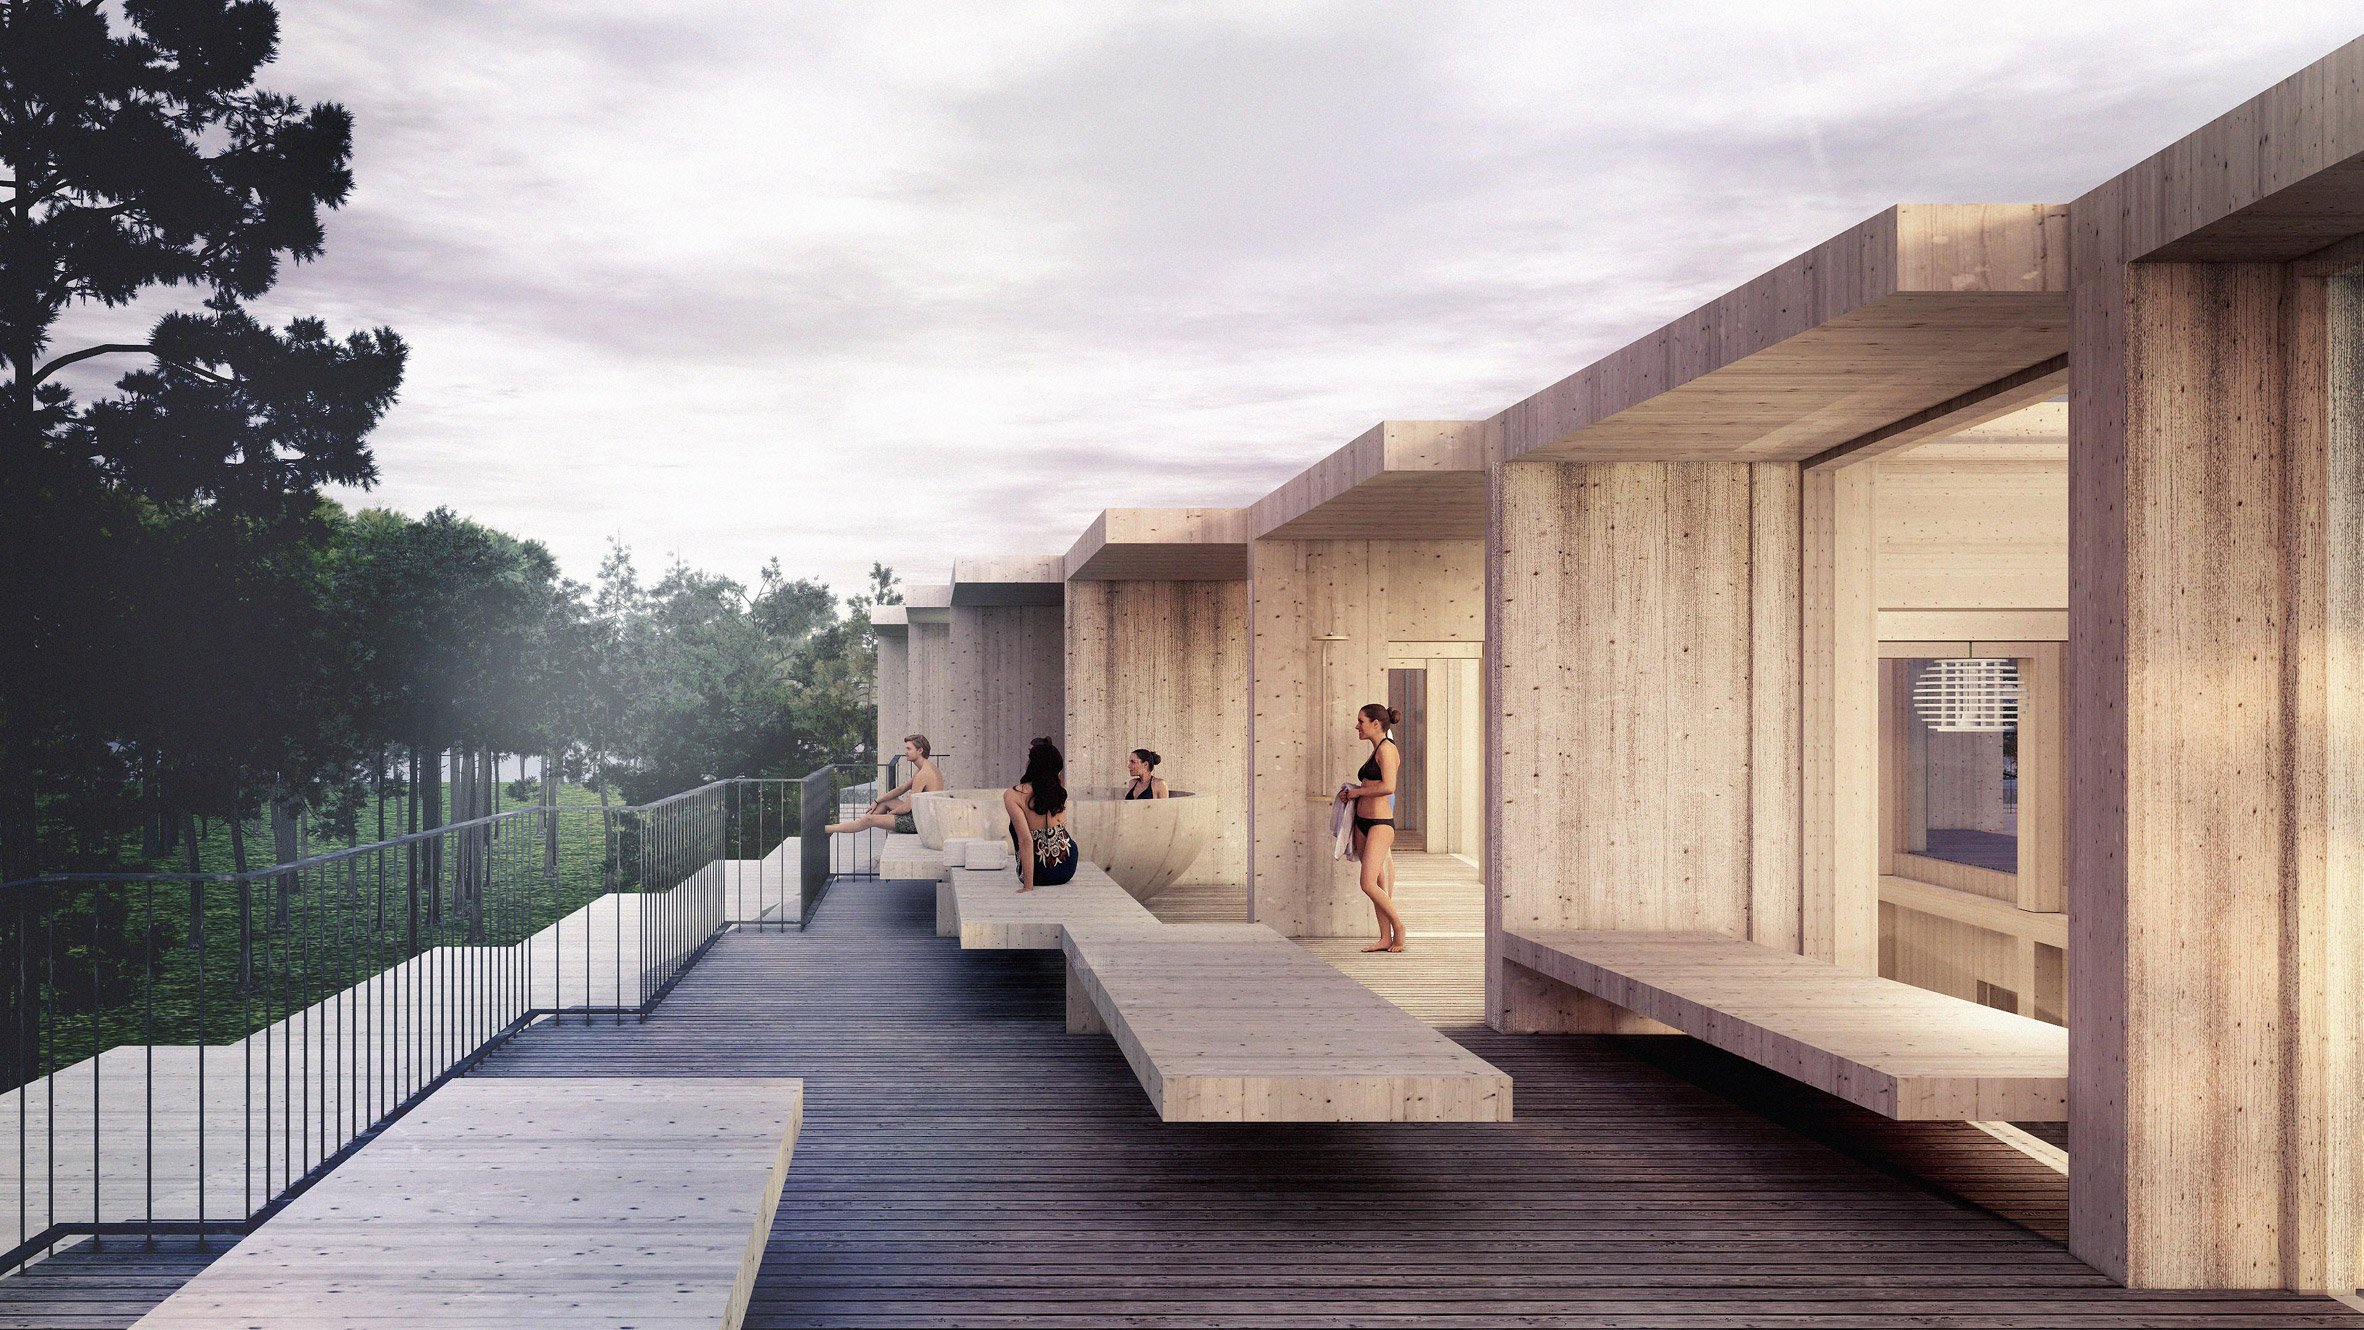 The rooftop spa in the proposed Hotel GSH extension by 3XN and GXN